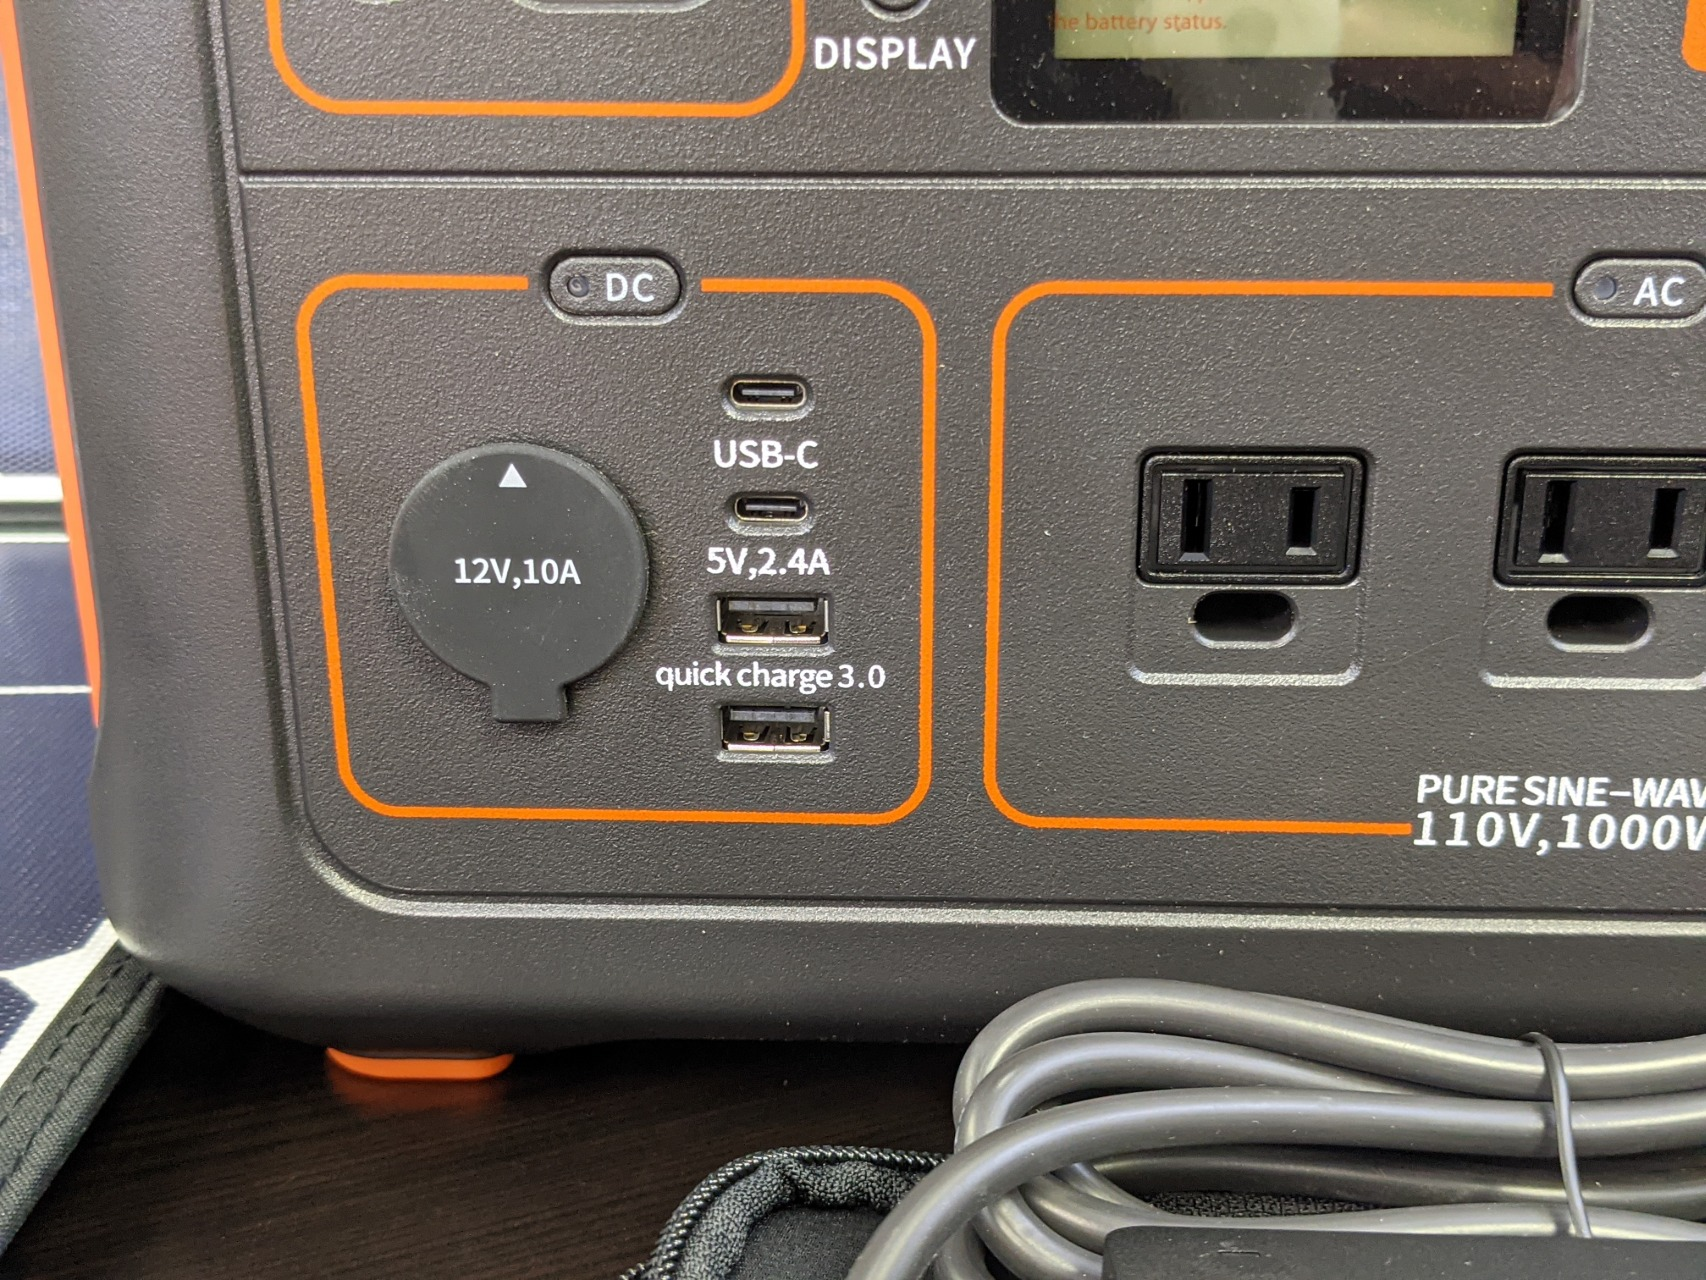 Jackery Explorer 1000 Portable Power Station review